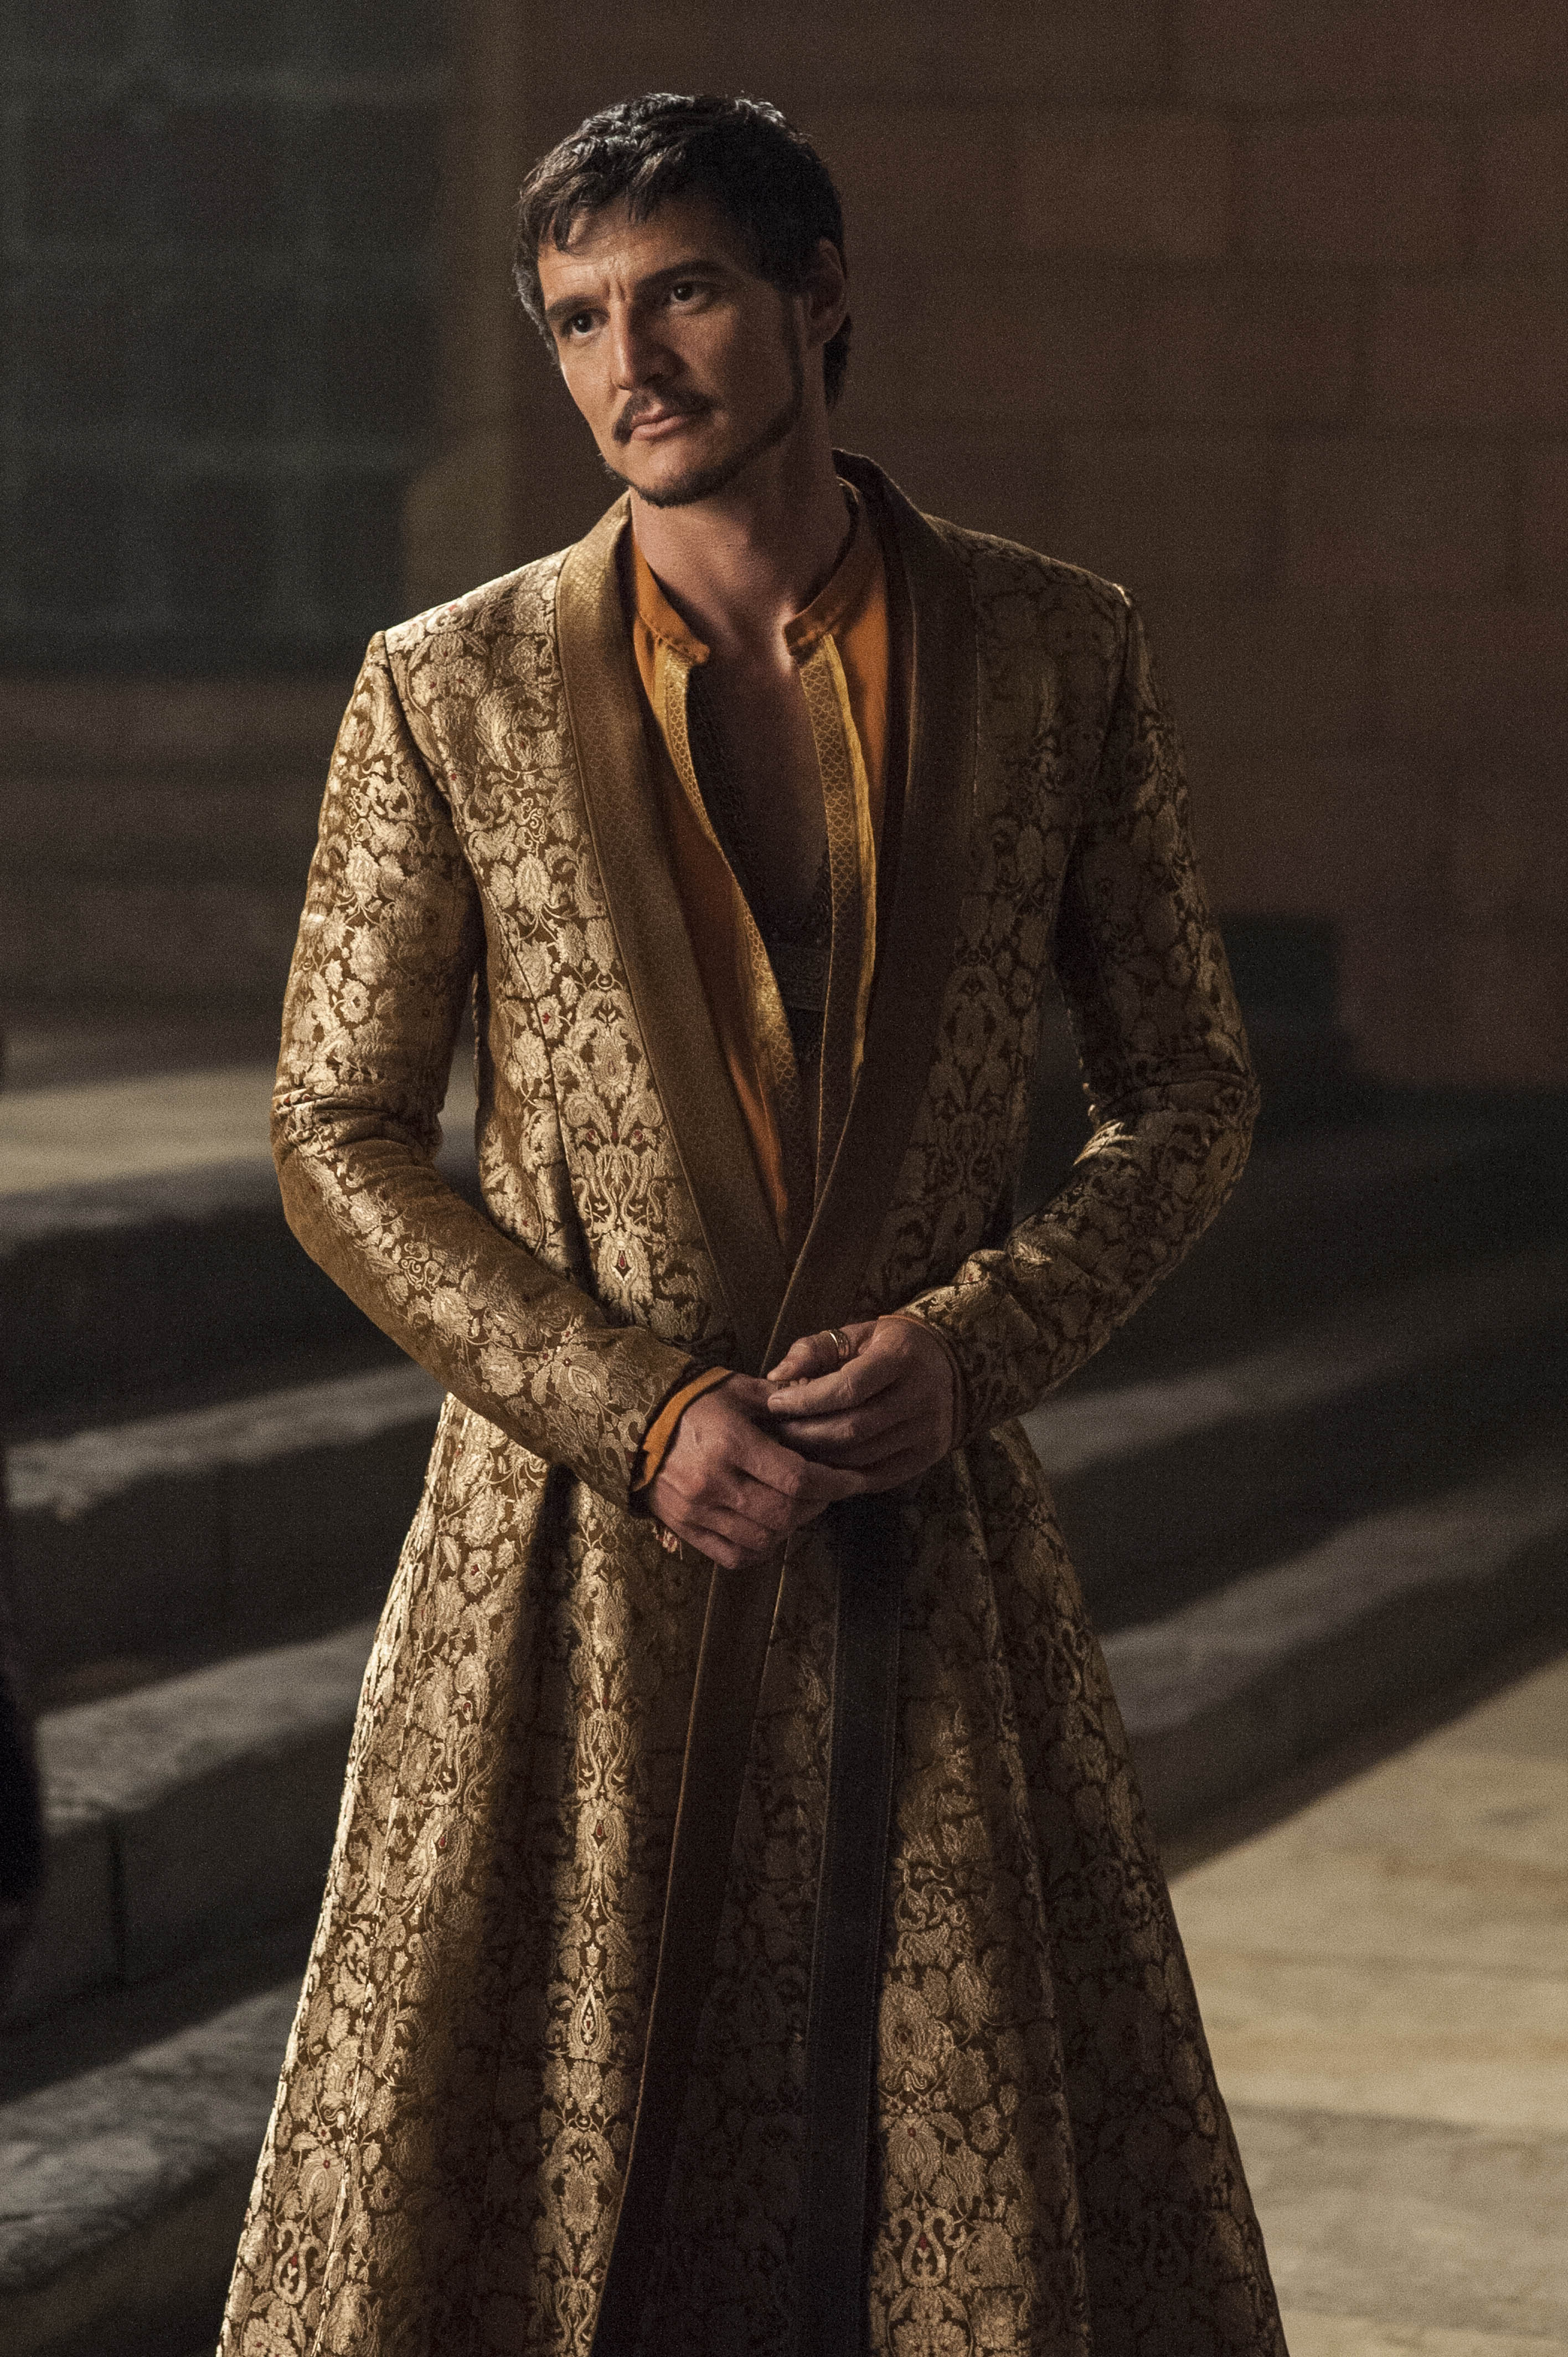 Oberyn Martell images Oberyn Martell HD wallpaper and background ...